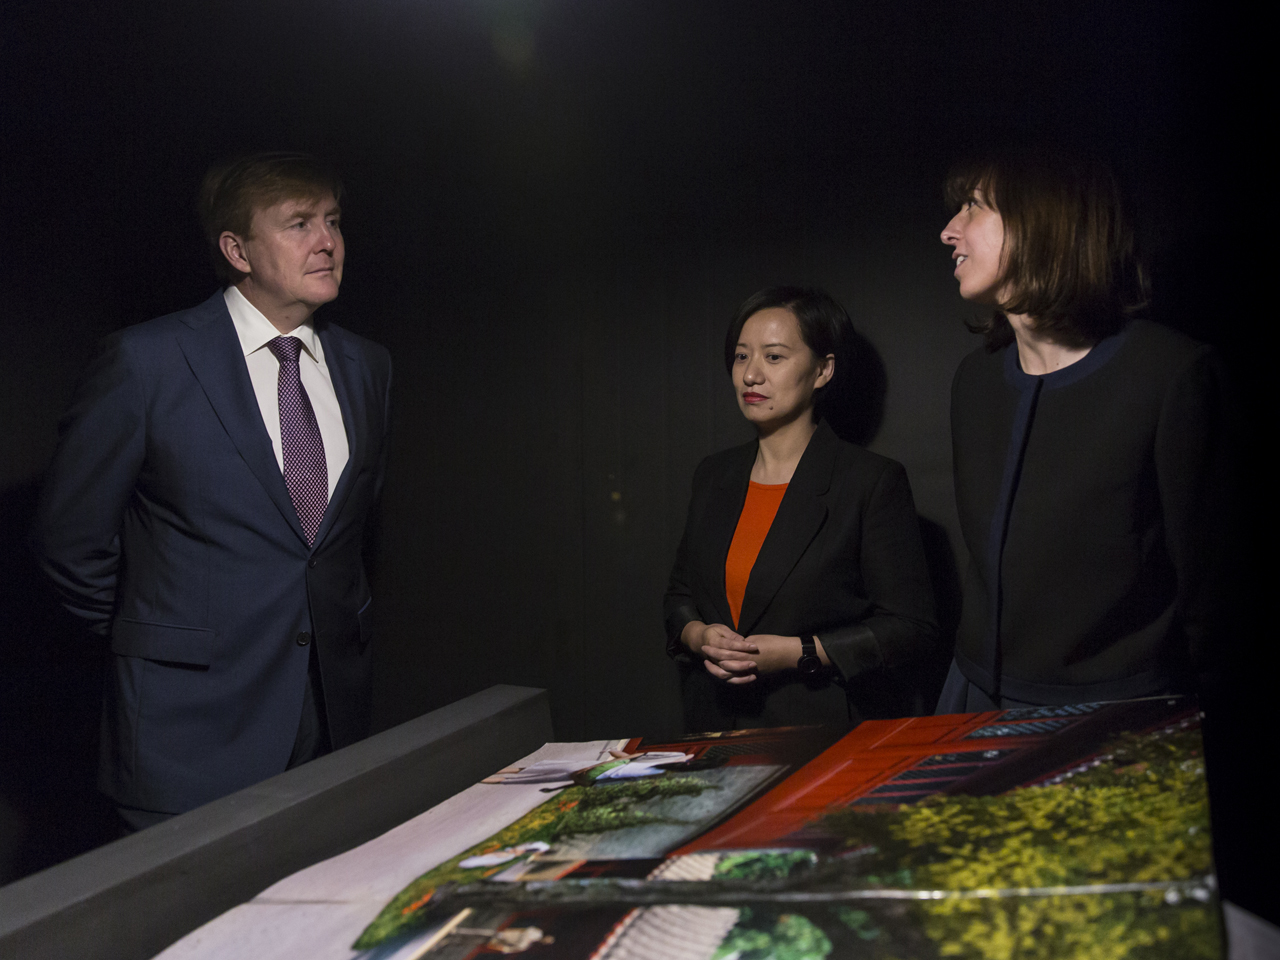 MVRDV's Marta Pozo and Wenchian Shi present Next Hutong research to His Majesty King Willem-Alexander of the Netherlands